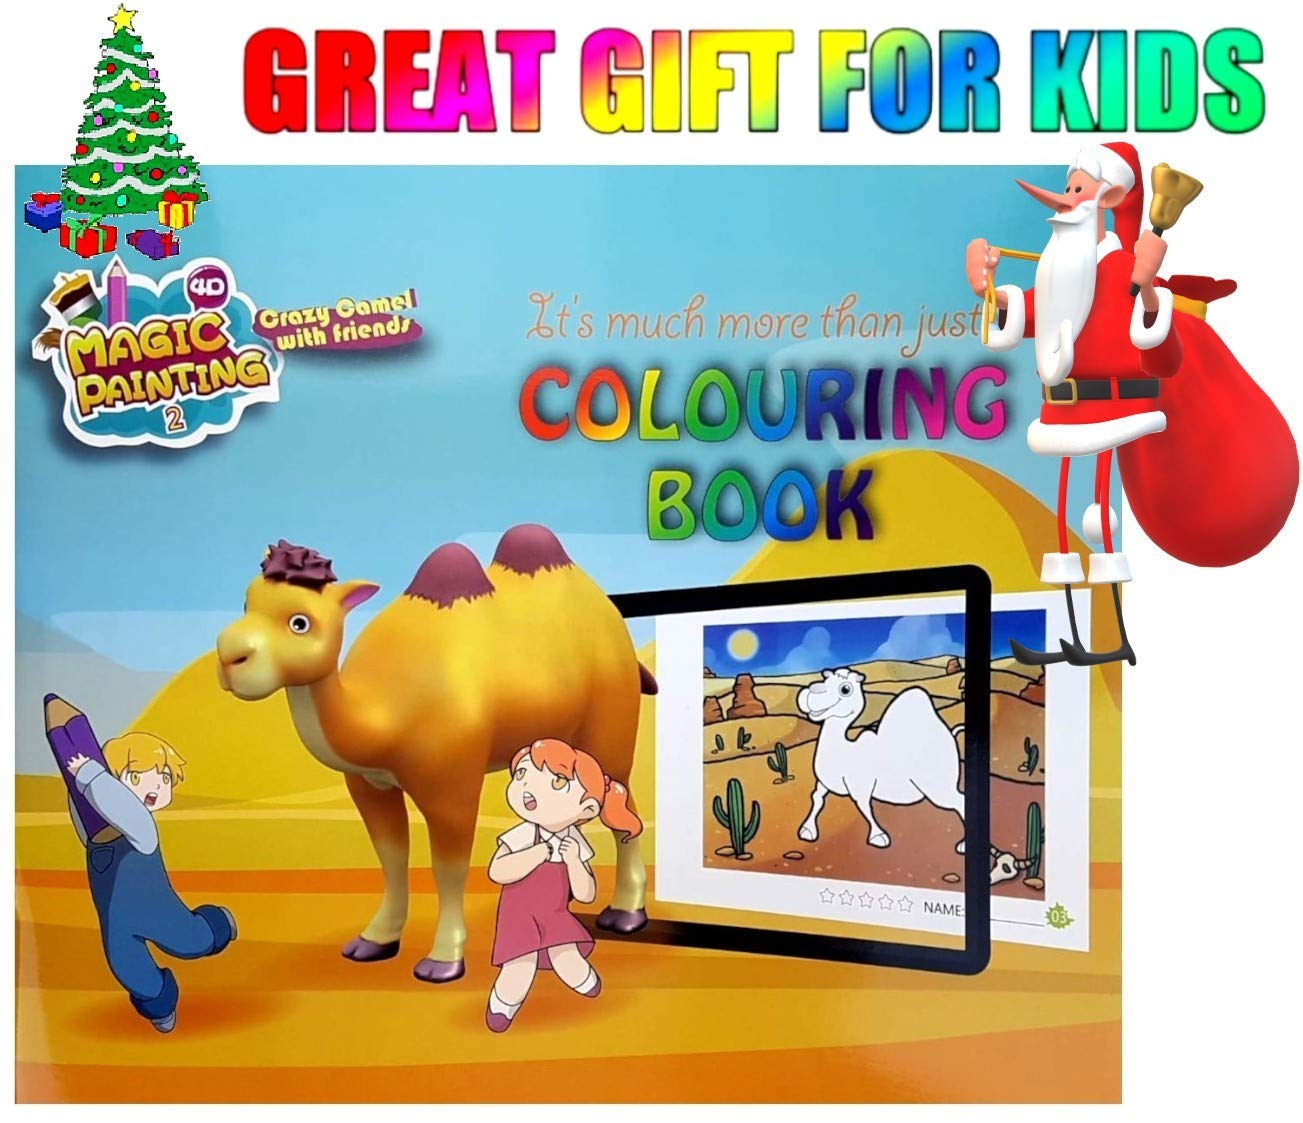 f793a3d0f8f04 4D Magic Painting Colouring Books Children Kids Girls Boys Christmas Xmas  Gifts  Amazon.co.uk  Toys   Games